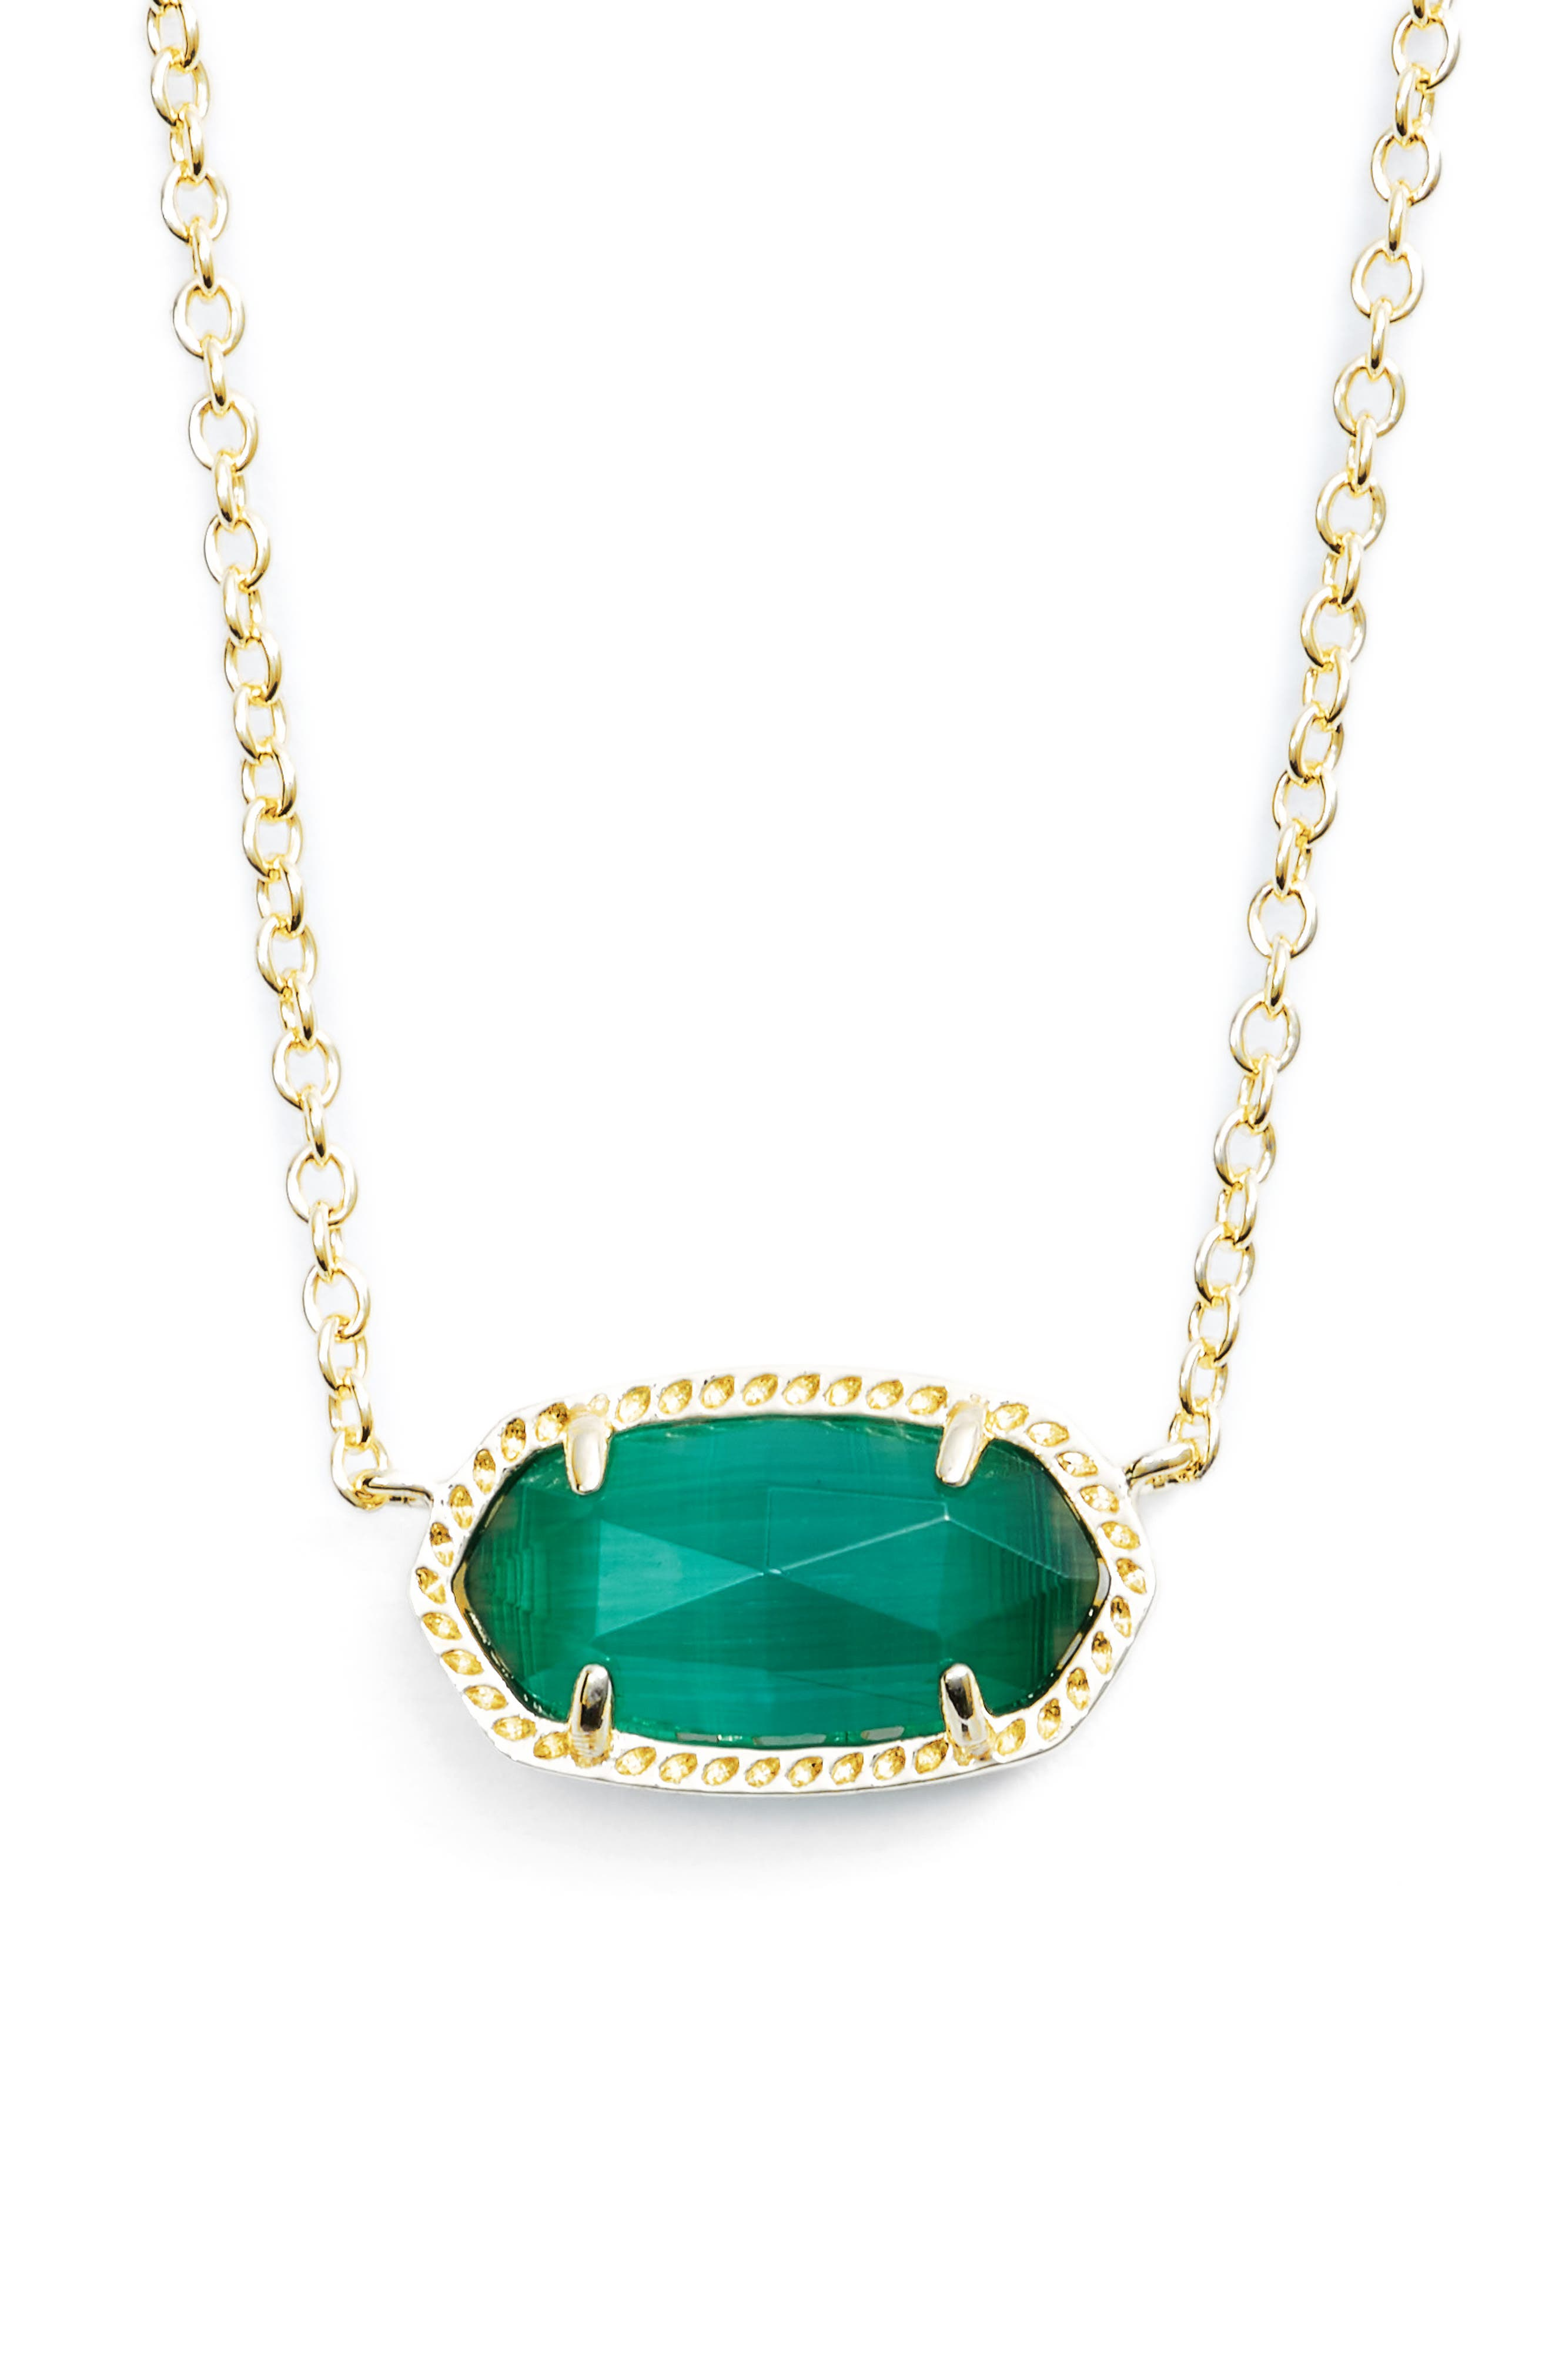 Kendra Scott Elisa Birthstone Pendant Necklace